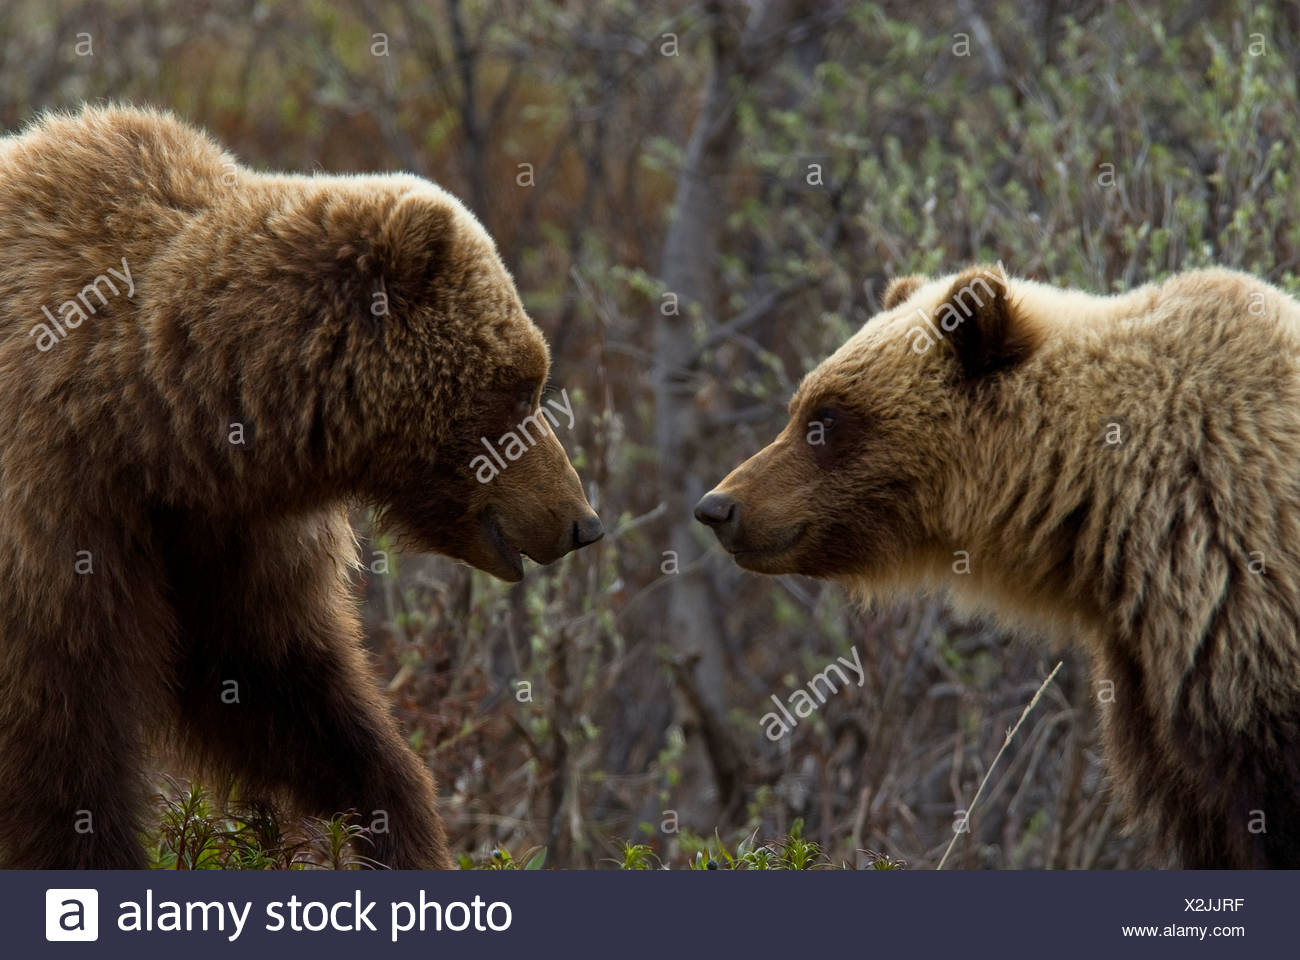 Sow and cub grizzly face to face at Sable Pass in Denali National Park, Alaska during Spring - Stock Image